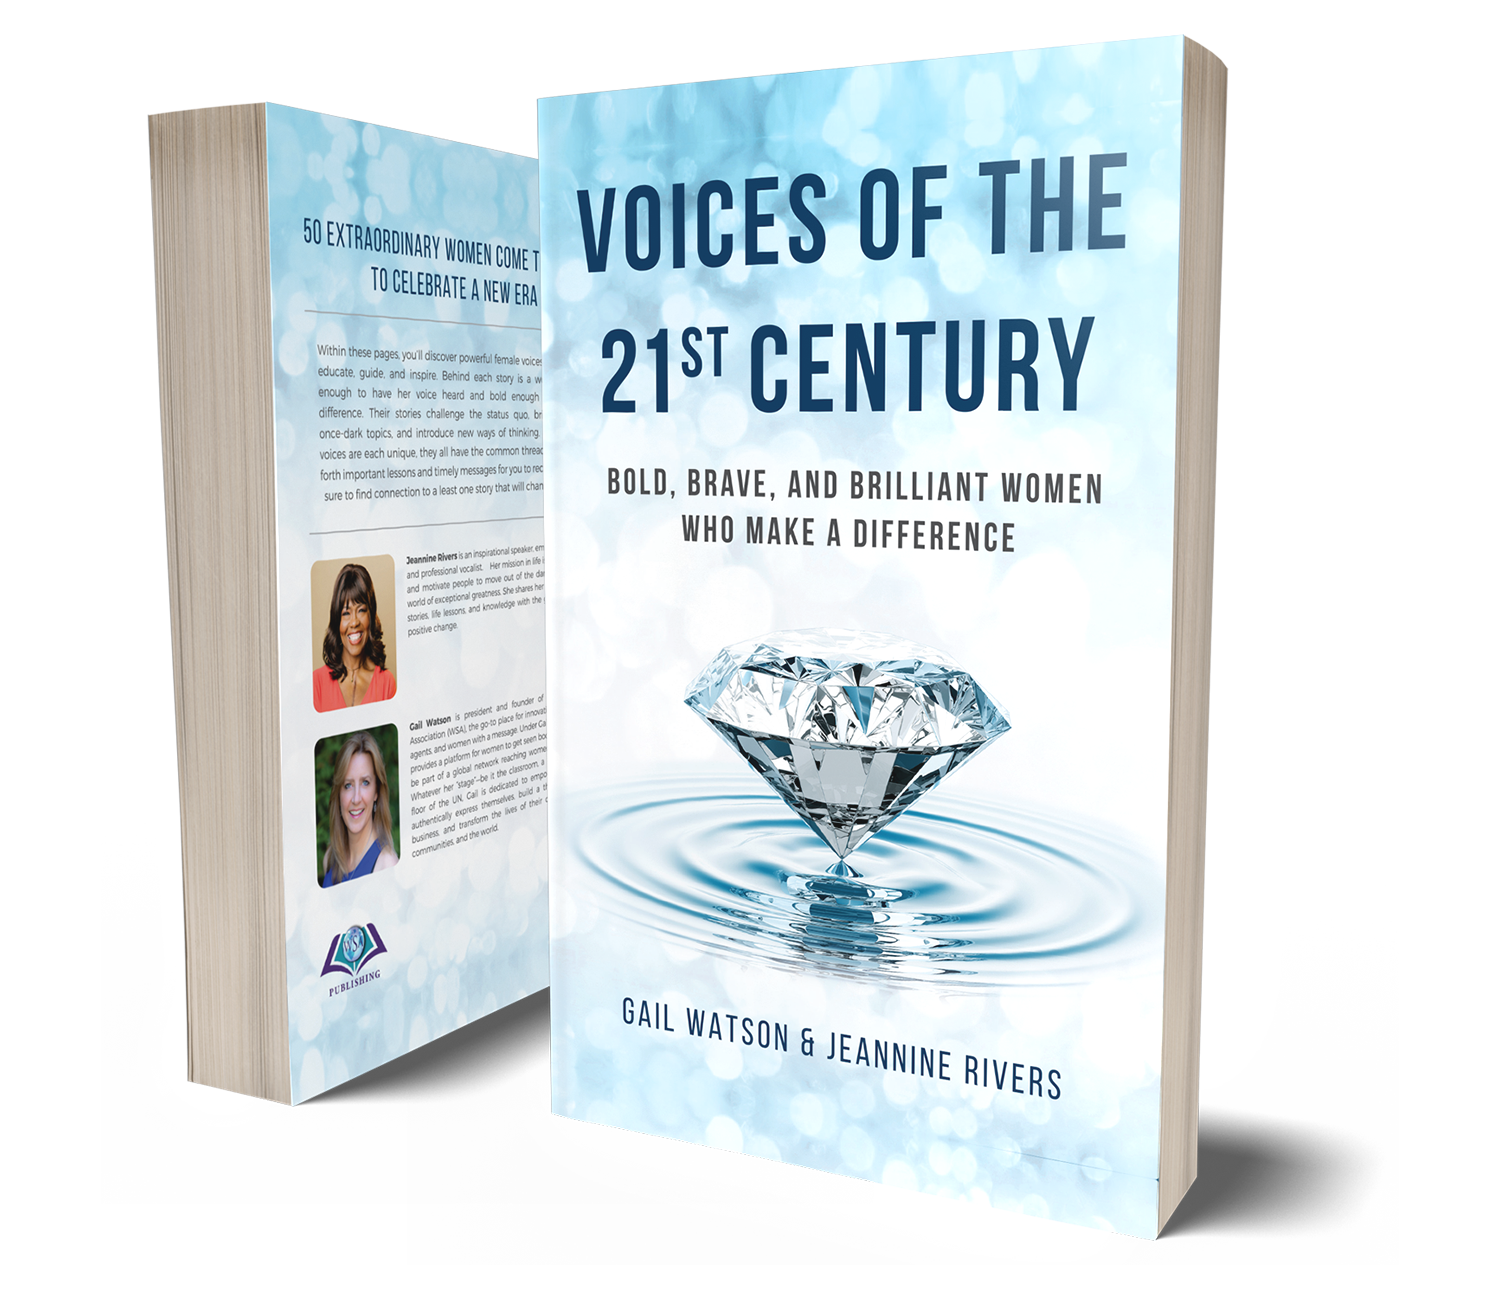 """Order my new book! - """"Voices of the 21st Century"""" brings 50 extraordinary women together to celebrate the new era of female voices rising up to educate, guide, and inspire."""